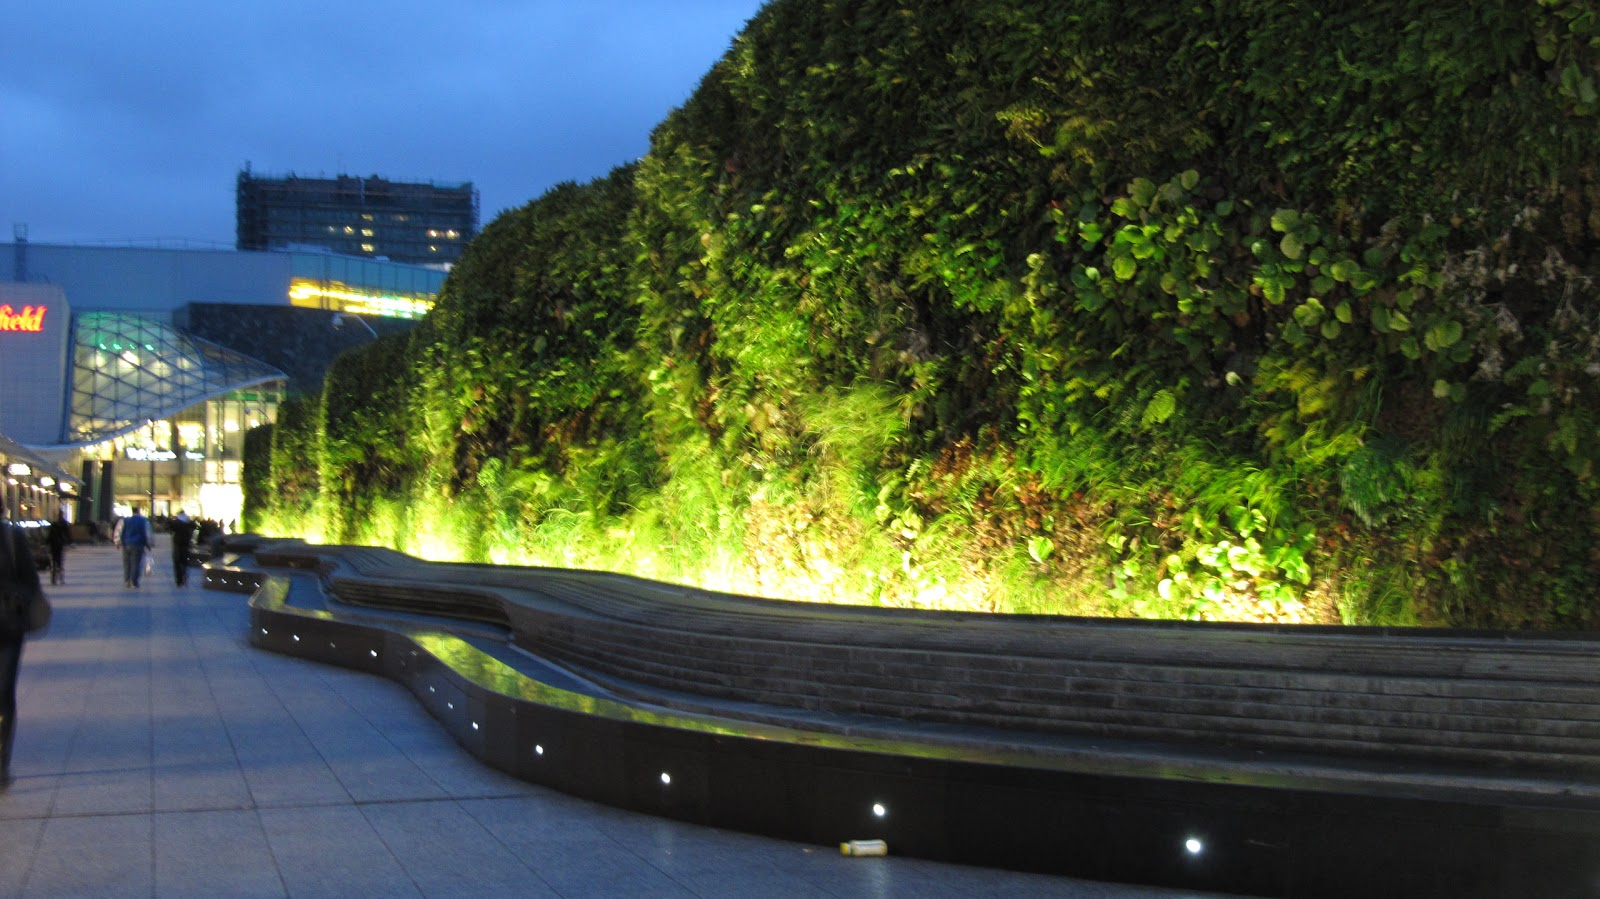 Lights For Green Wall : A.Barthel: Lighting